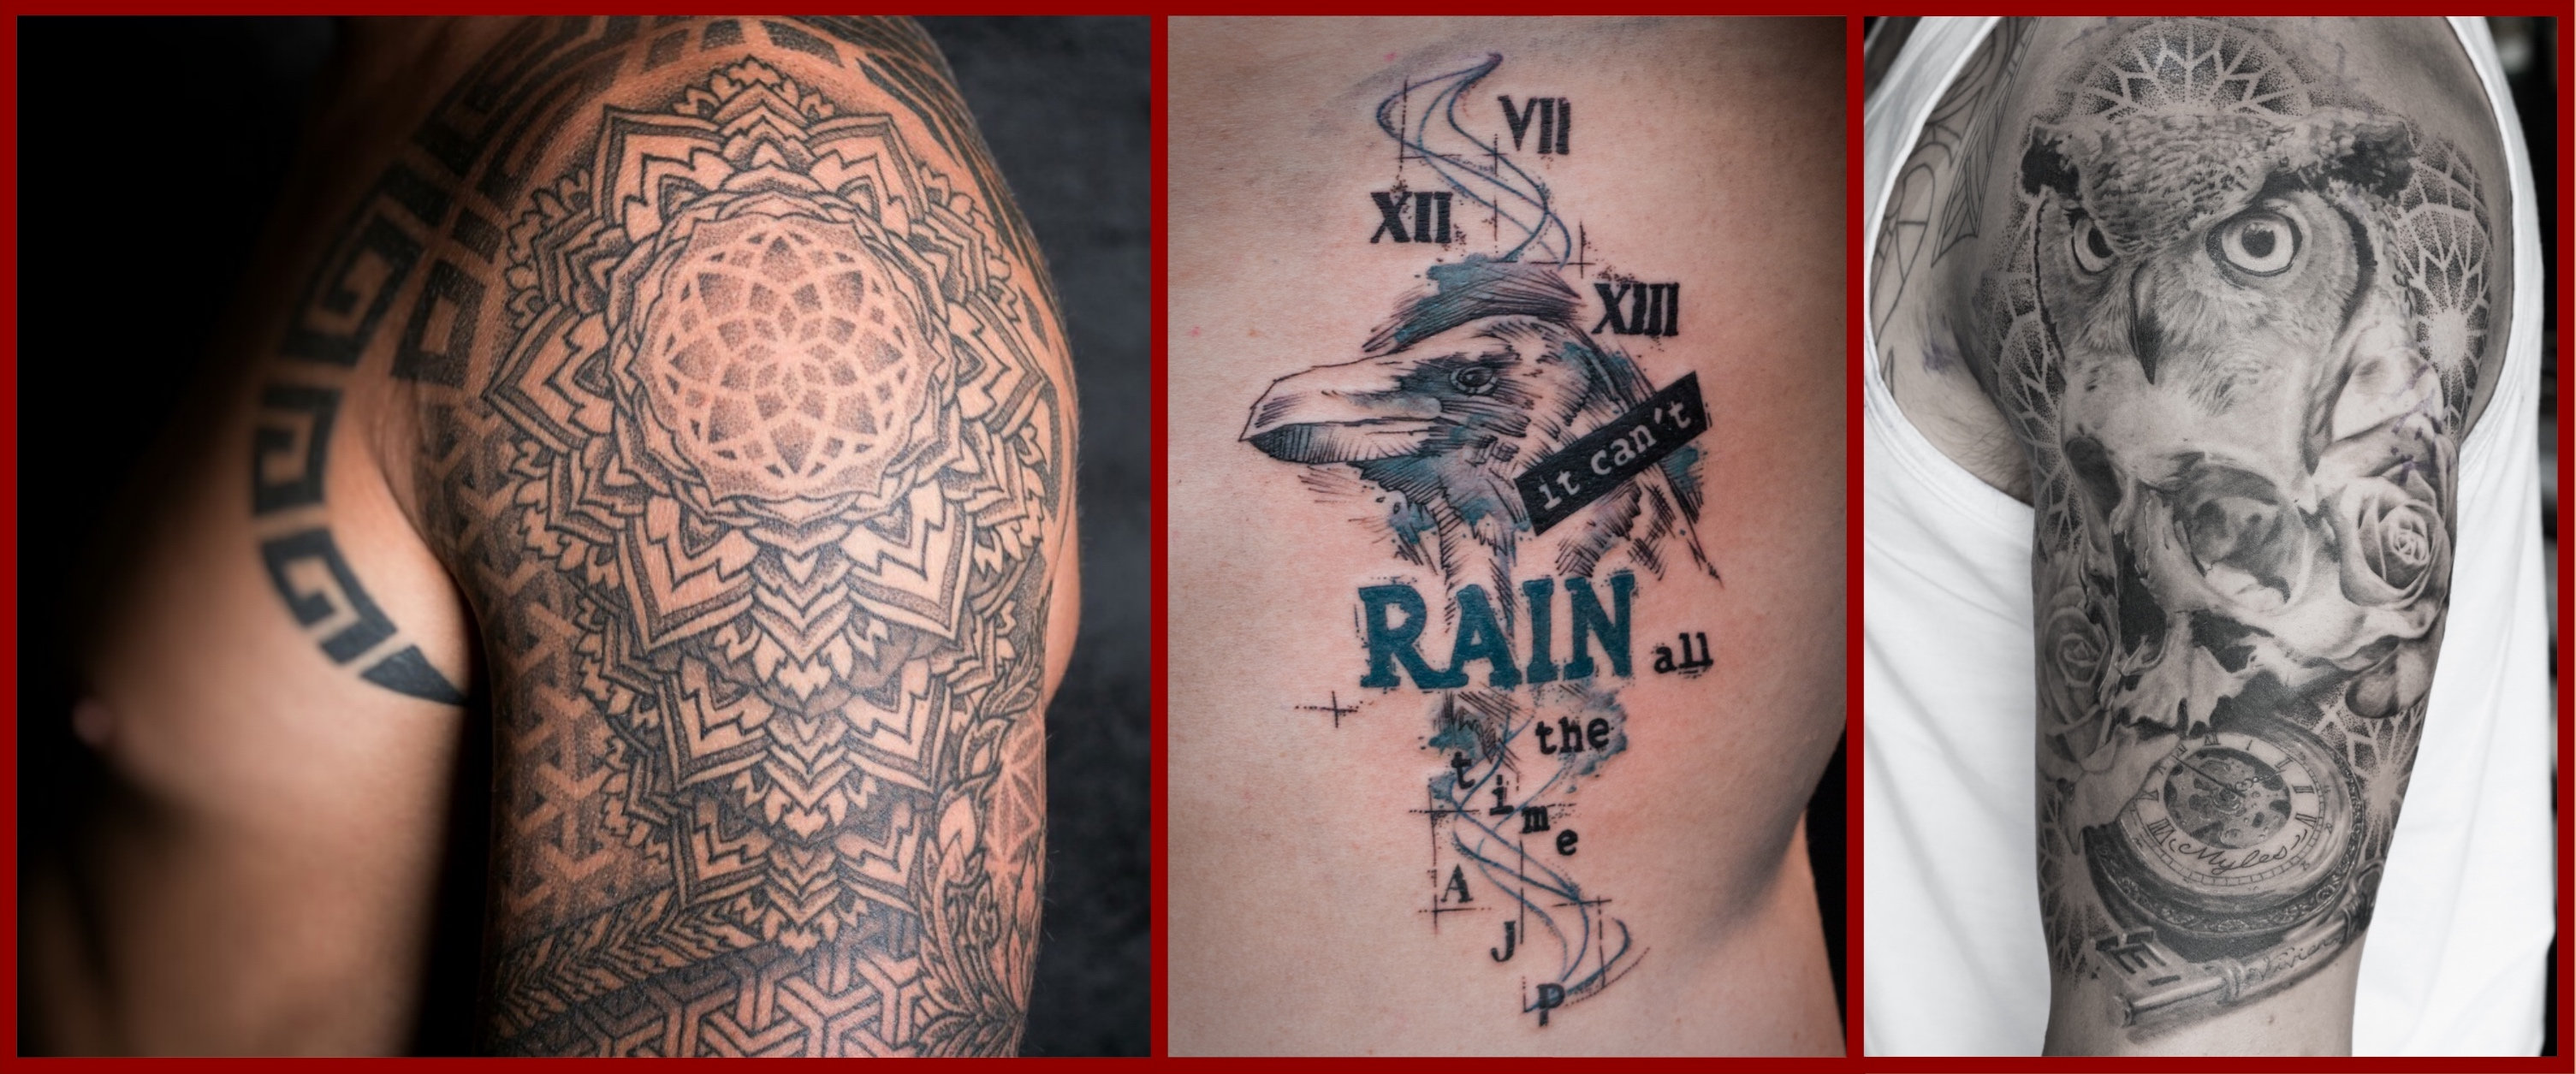 Tattoos by Sean Perrins